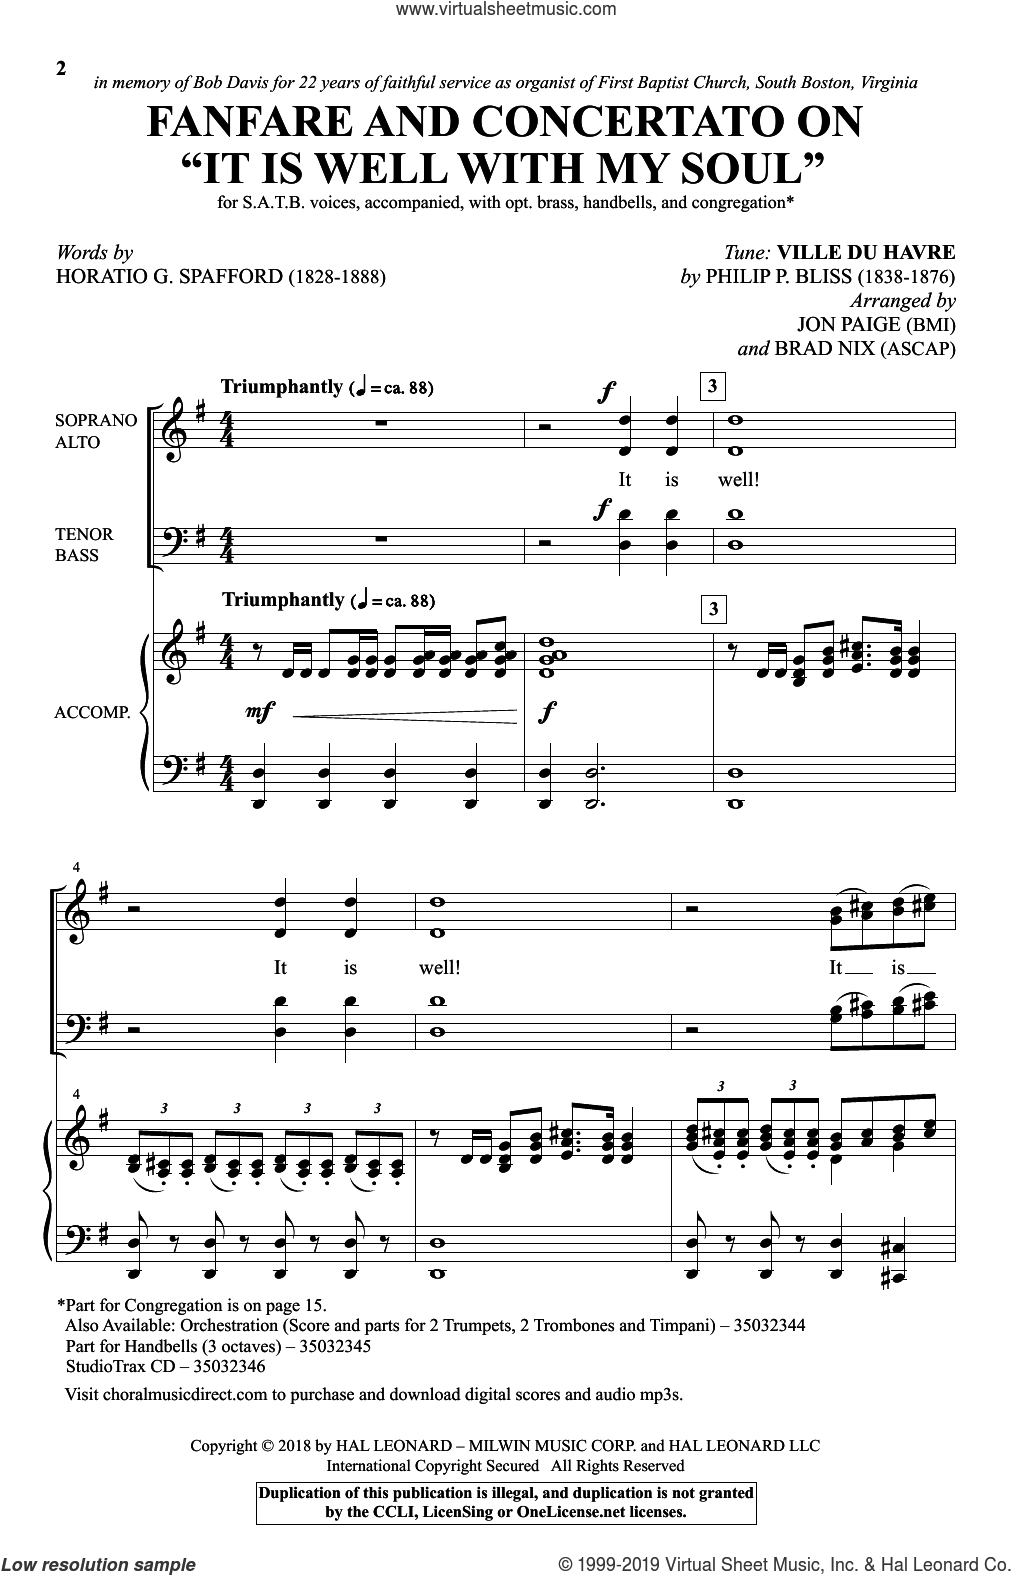 Fanfare And Concertato On 'It Is Well With My Soul' (arr. Jon Paige and Brad Nix) sheet music for choir (SATB: soprano, alto, tenor, bass) by Philip P. Bliss, Brad Nix, Jon Paige and Horatio Spafford, intermediate skill level